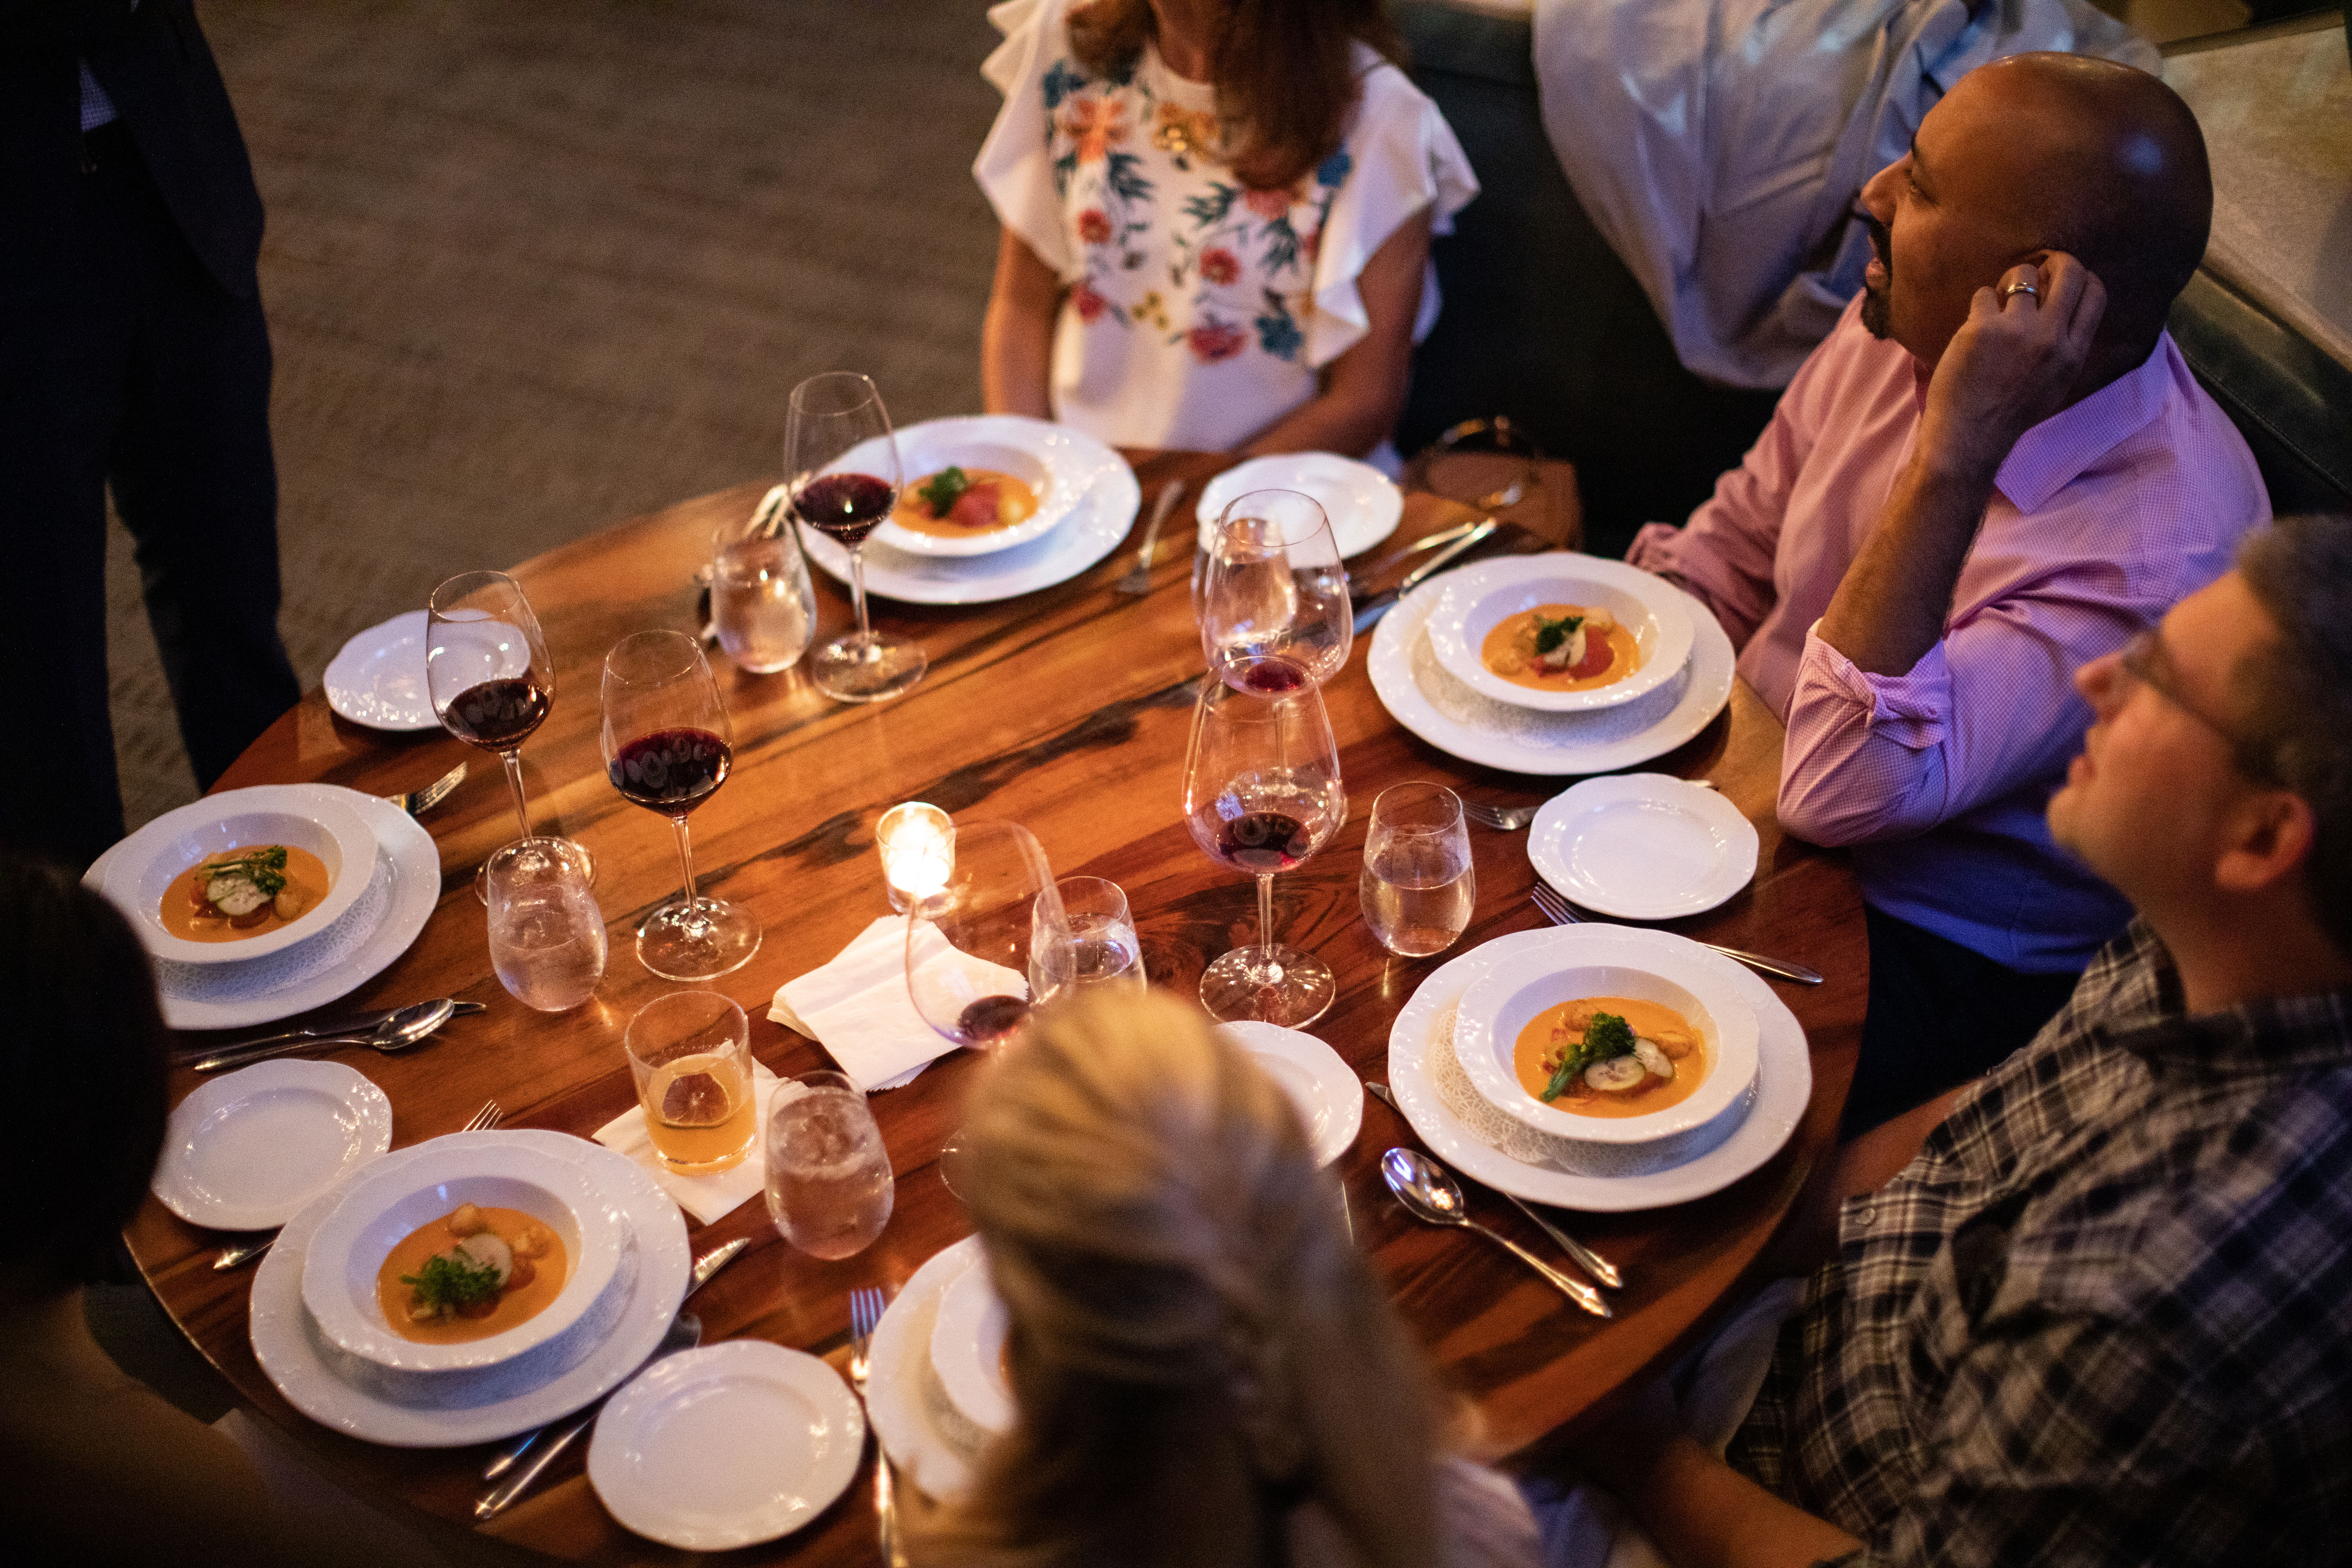 Group of diners at round table during private event with soups and glasses of wine